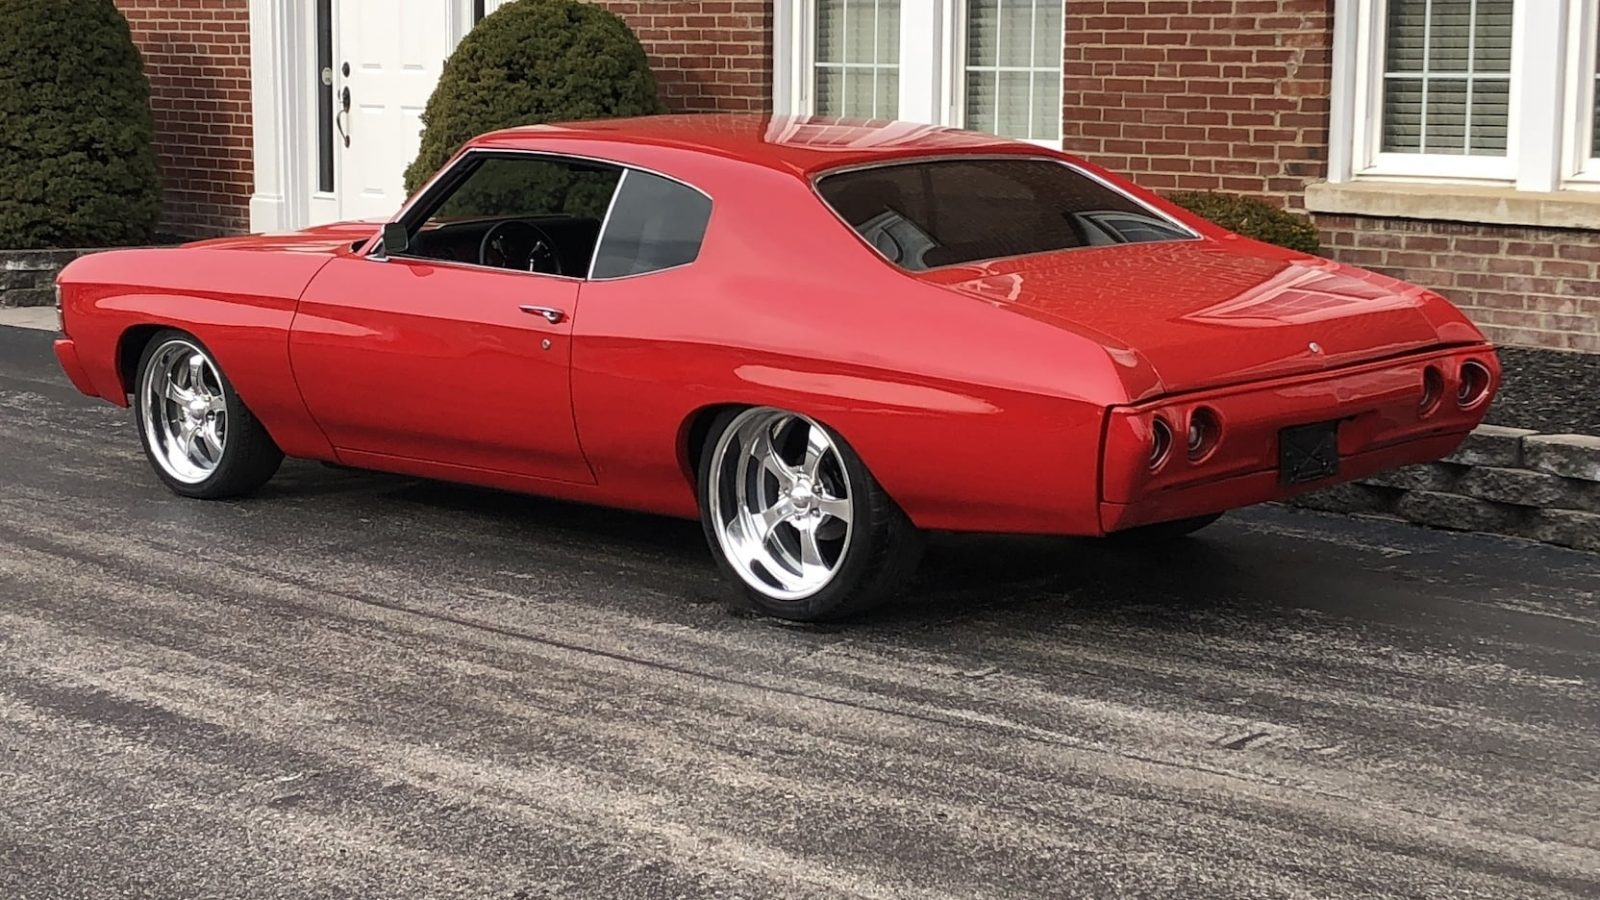 1971 CHEVROLET CHEVELLE PRO TOURING